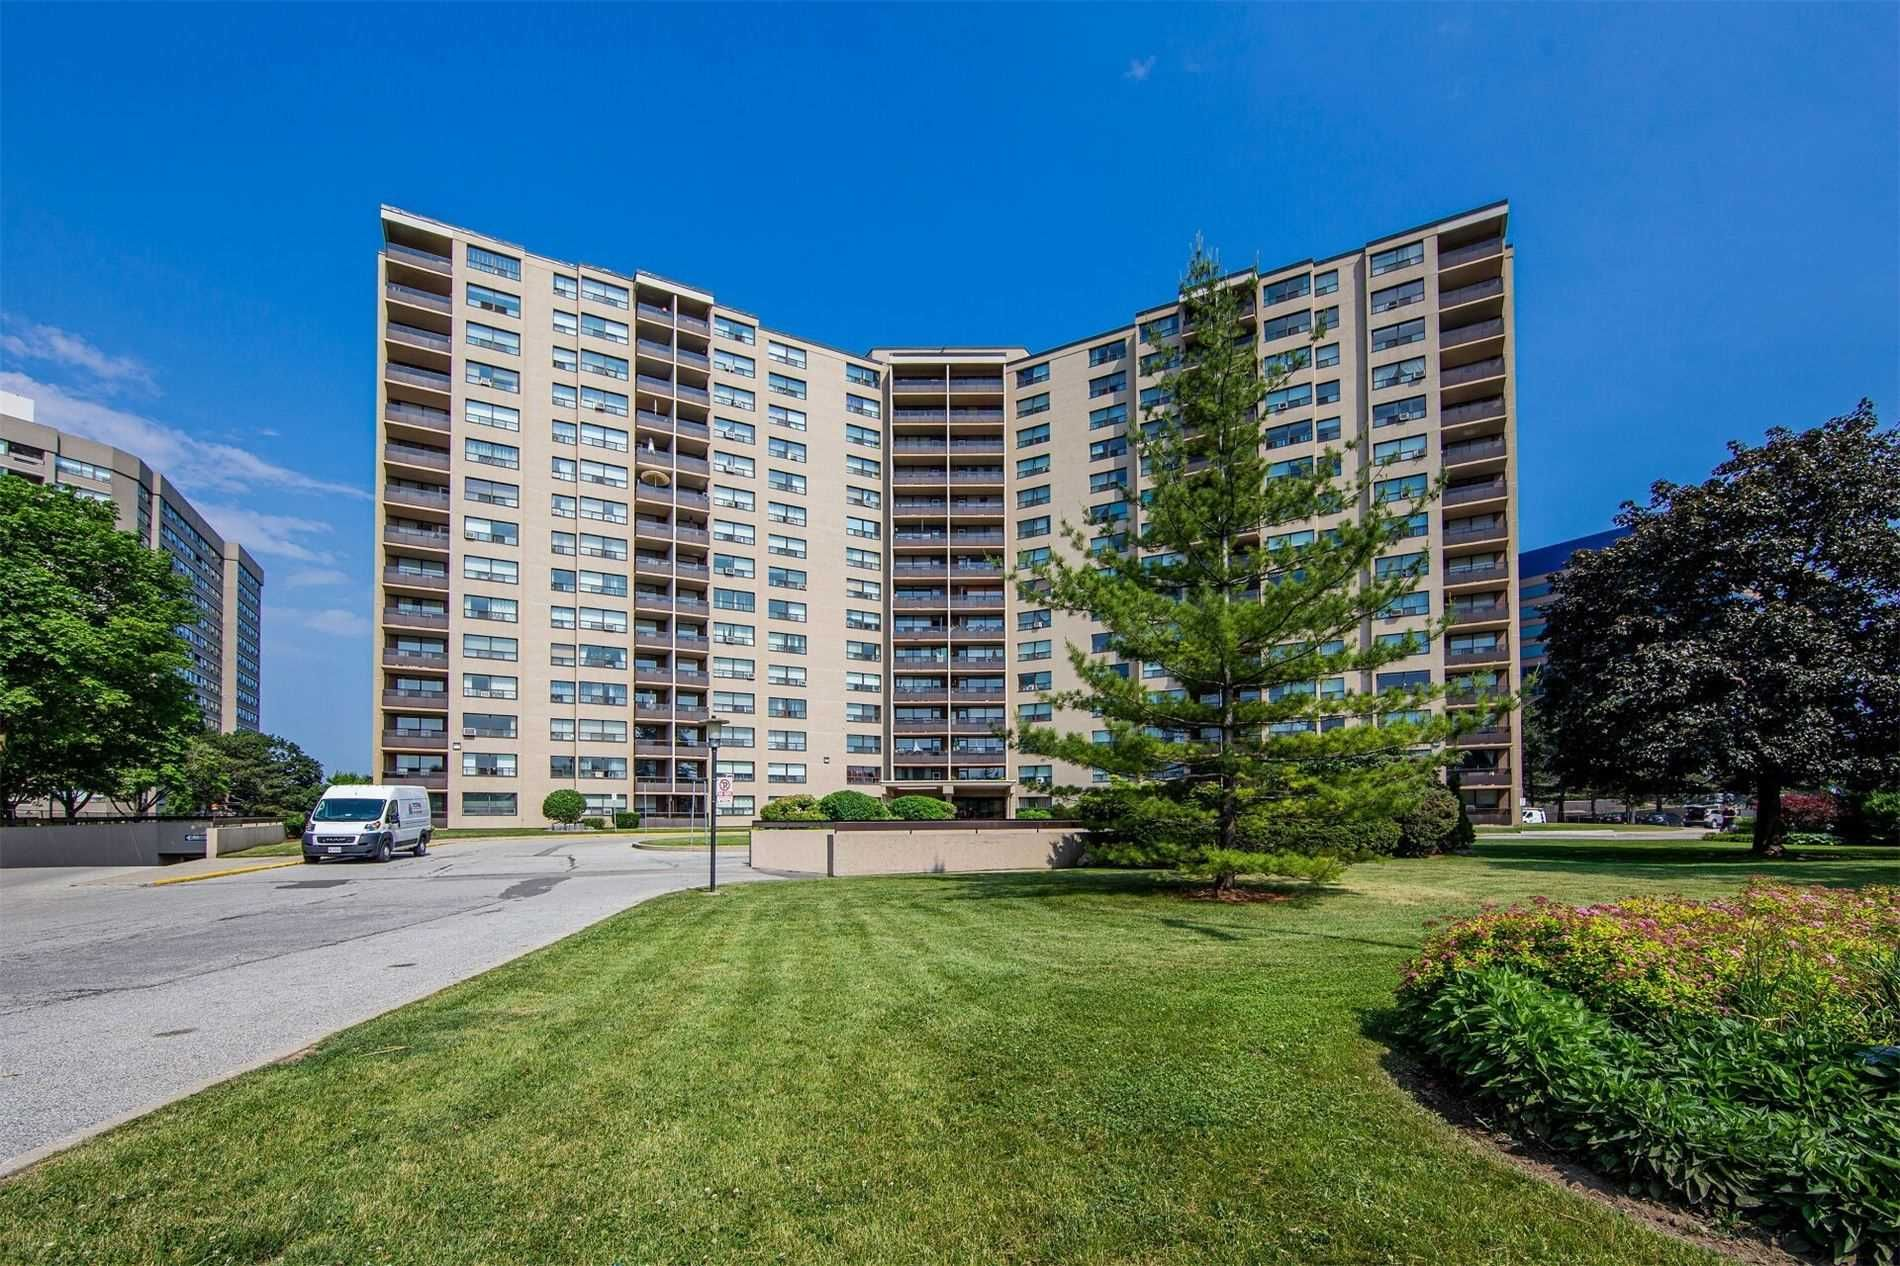 451 The West Mall, unit 214 for sale in Toronto - image #2